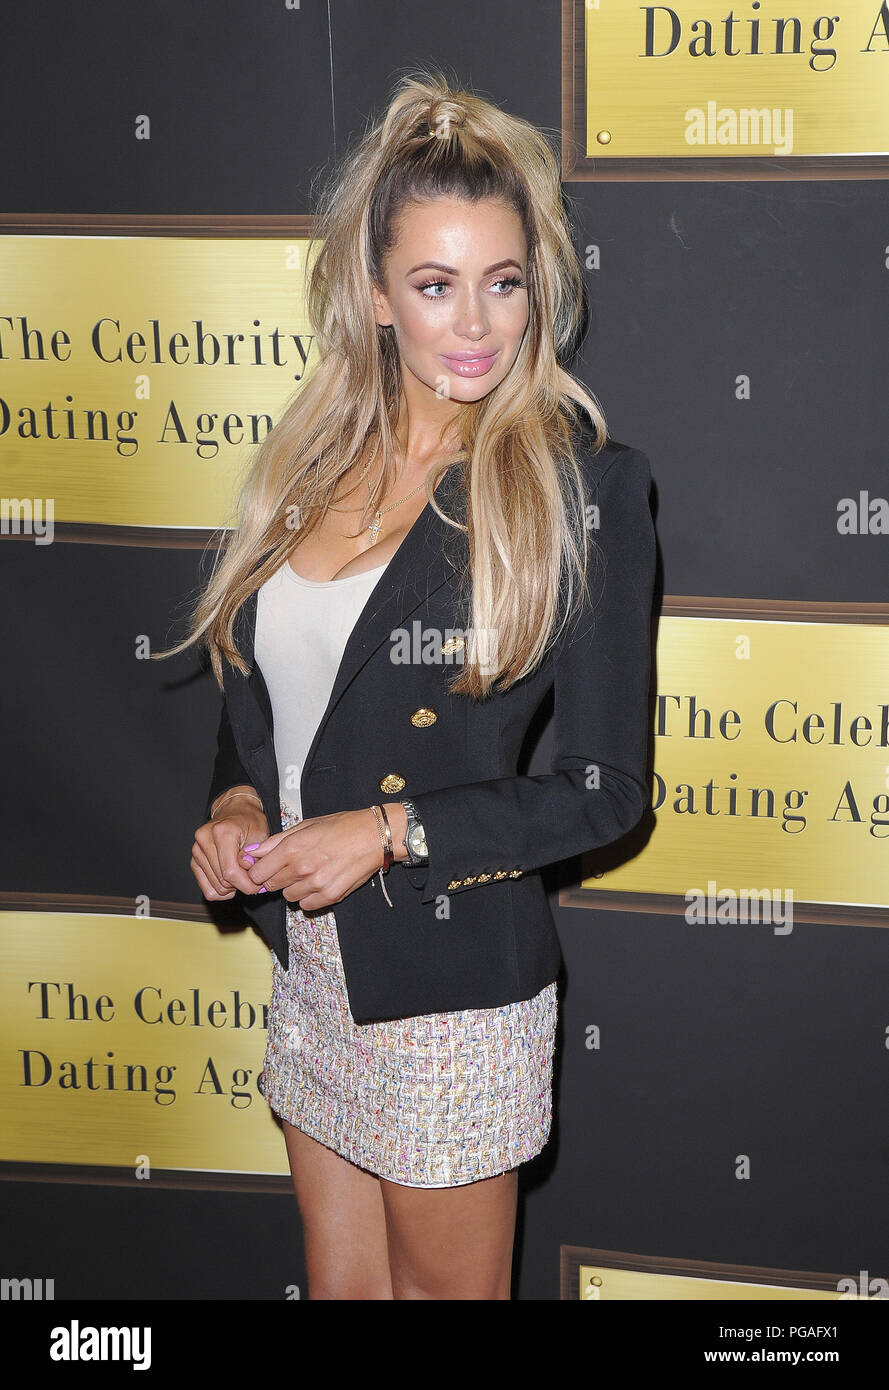 london celebs go dating age how old do u have to be to start dating